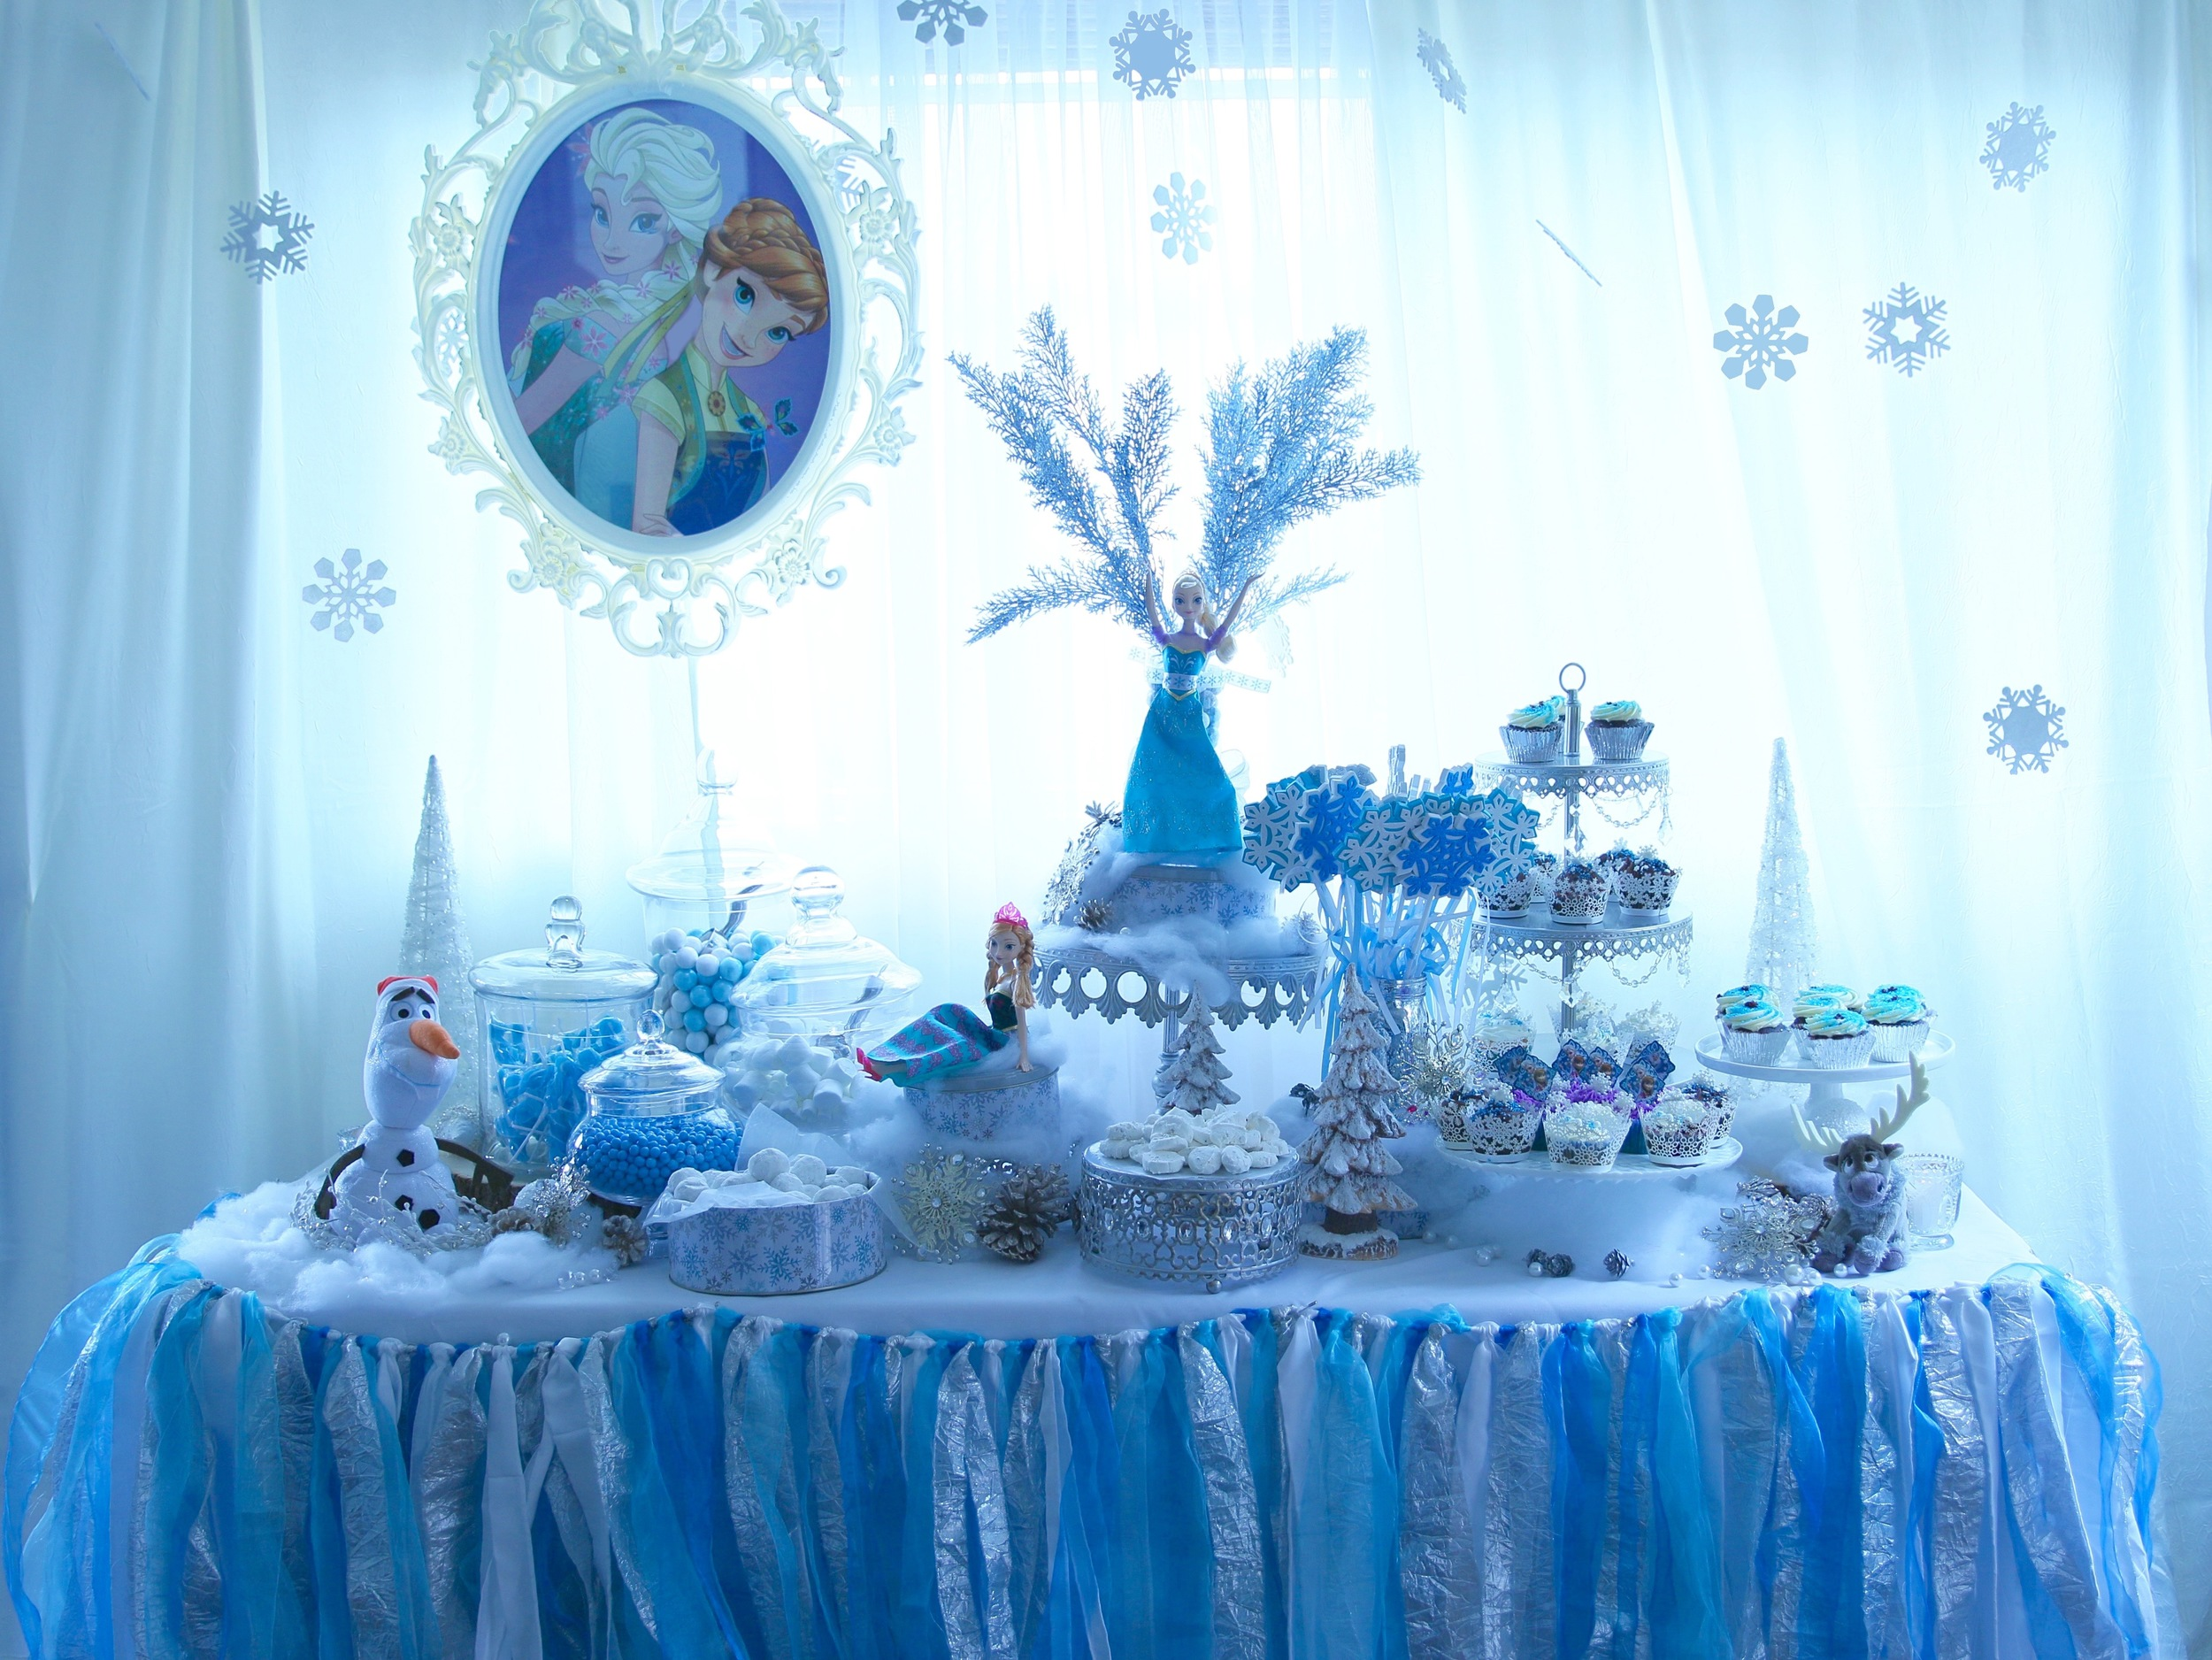 All this available to rent for a FROZEN party! @inJOYtheParty